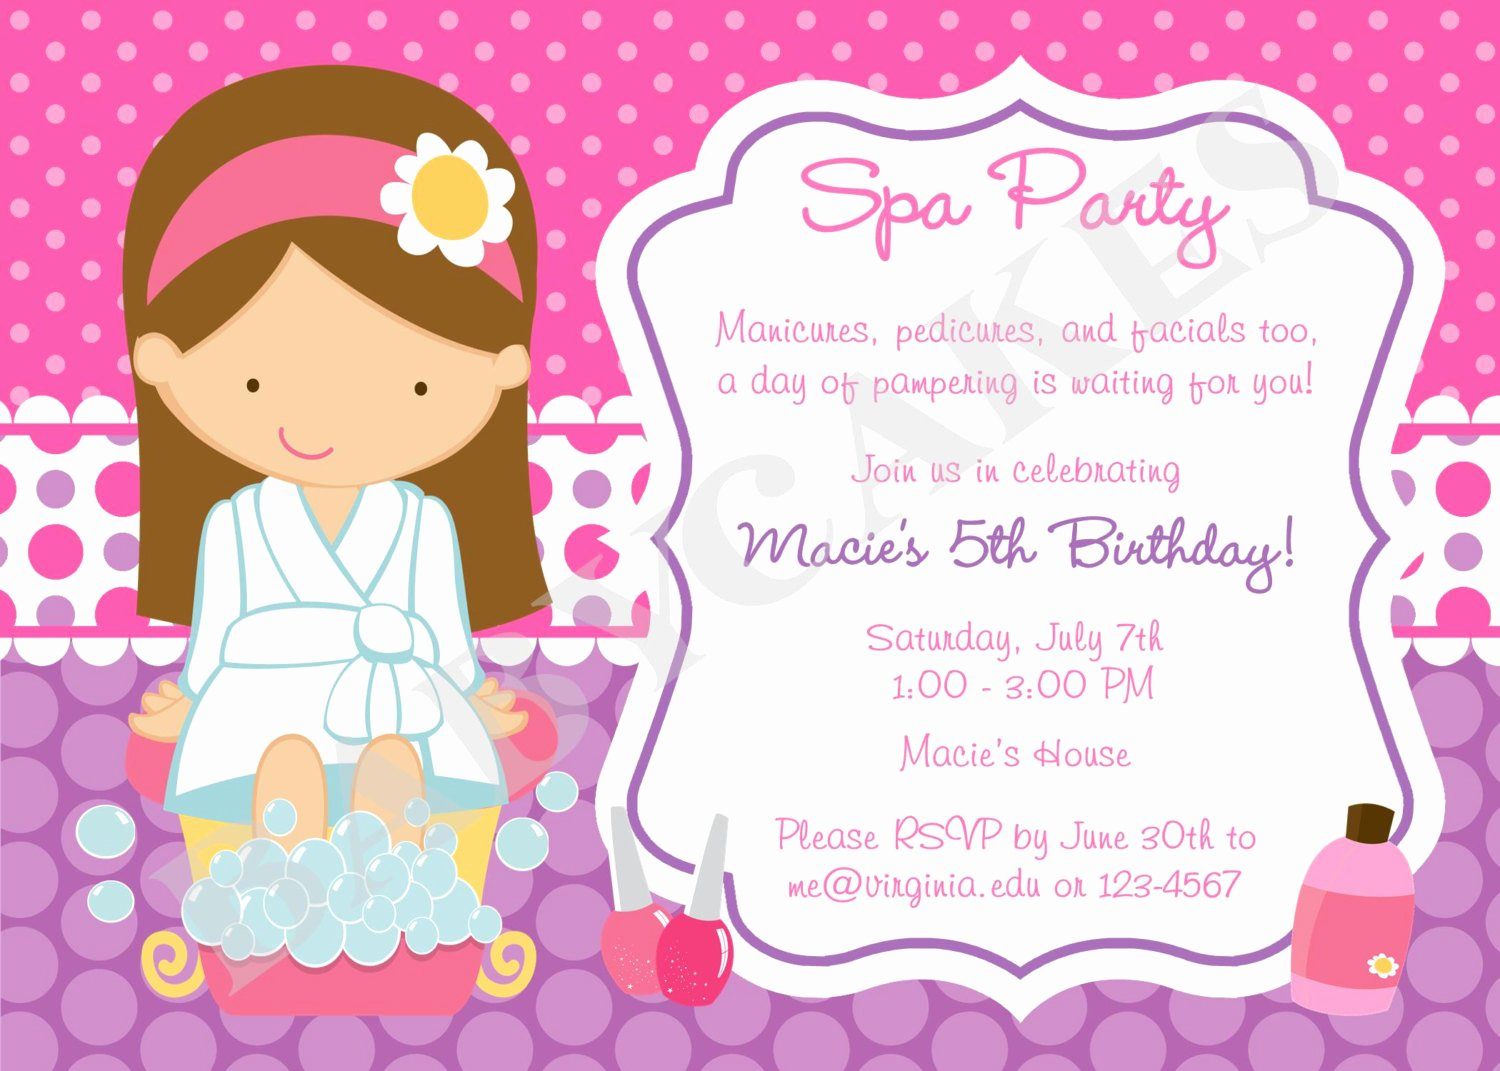 Spa Party Invitation Wording Fresh Spa Party Birthday Invitation Invite Spa Birthday Spa Invite